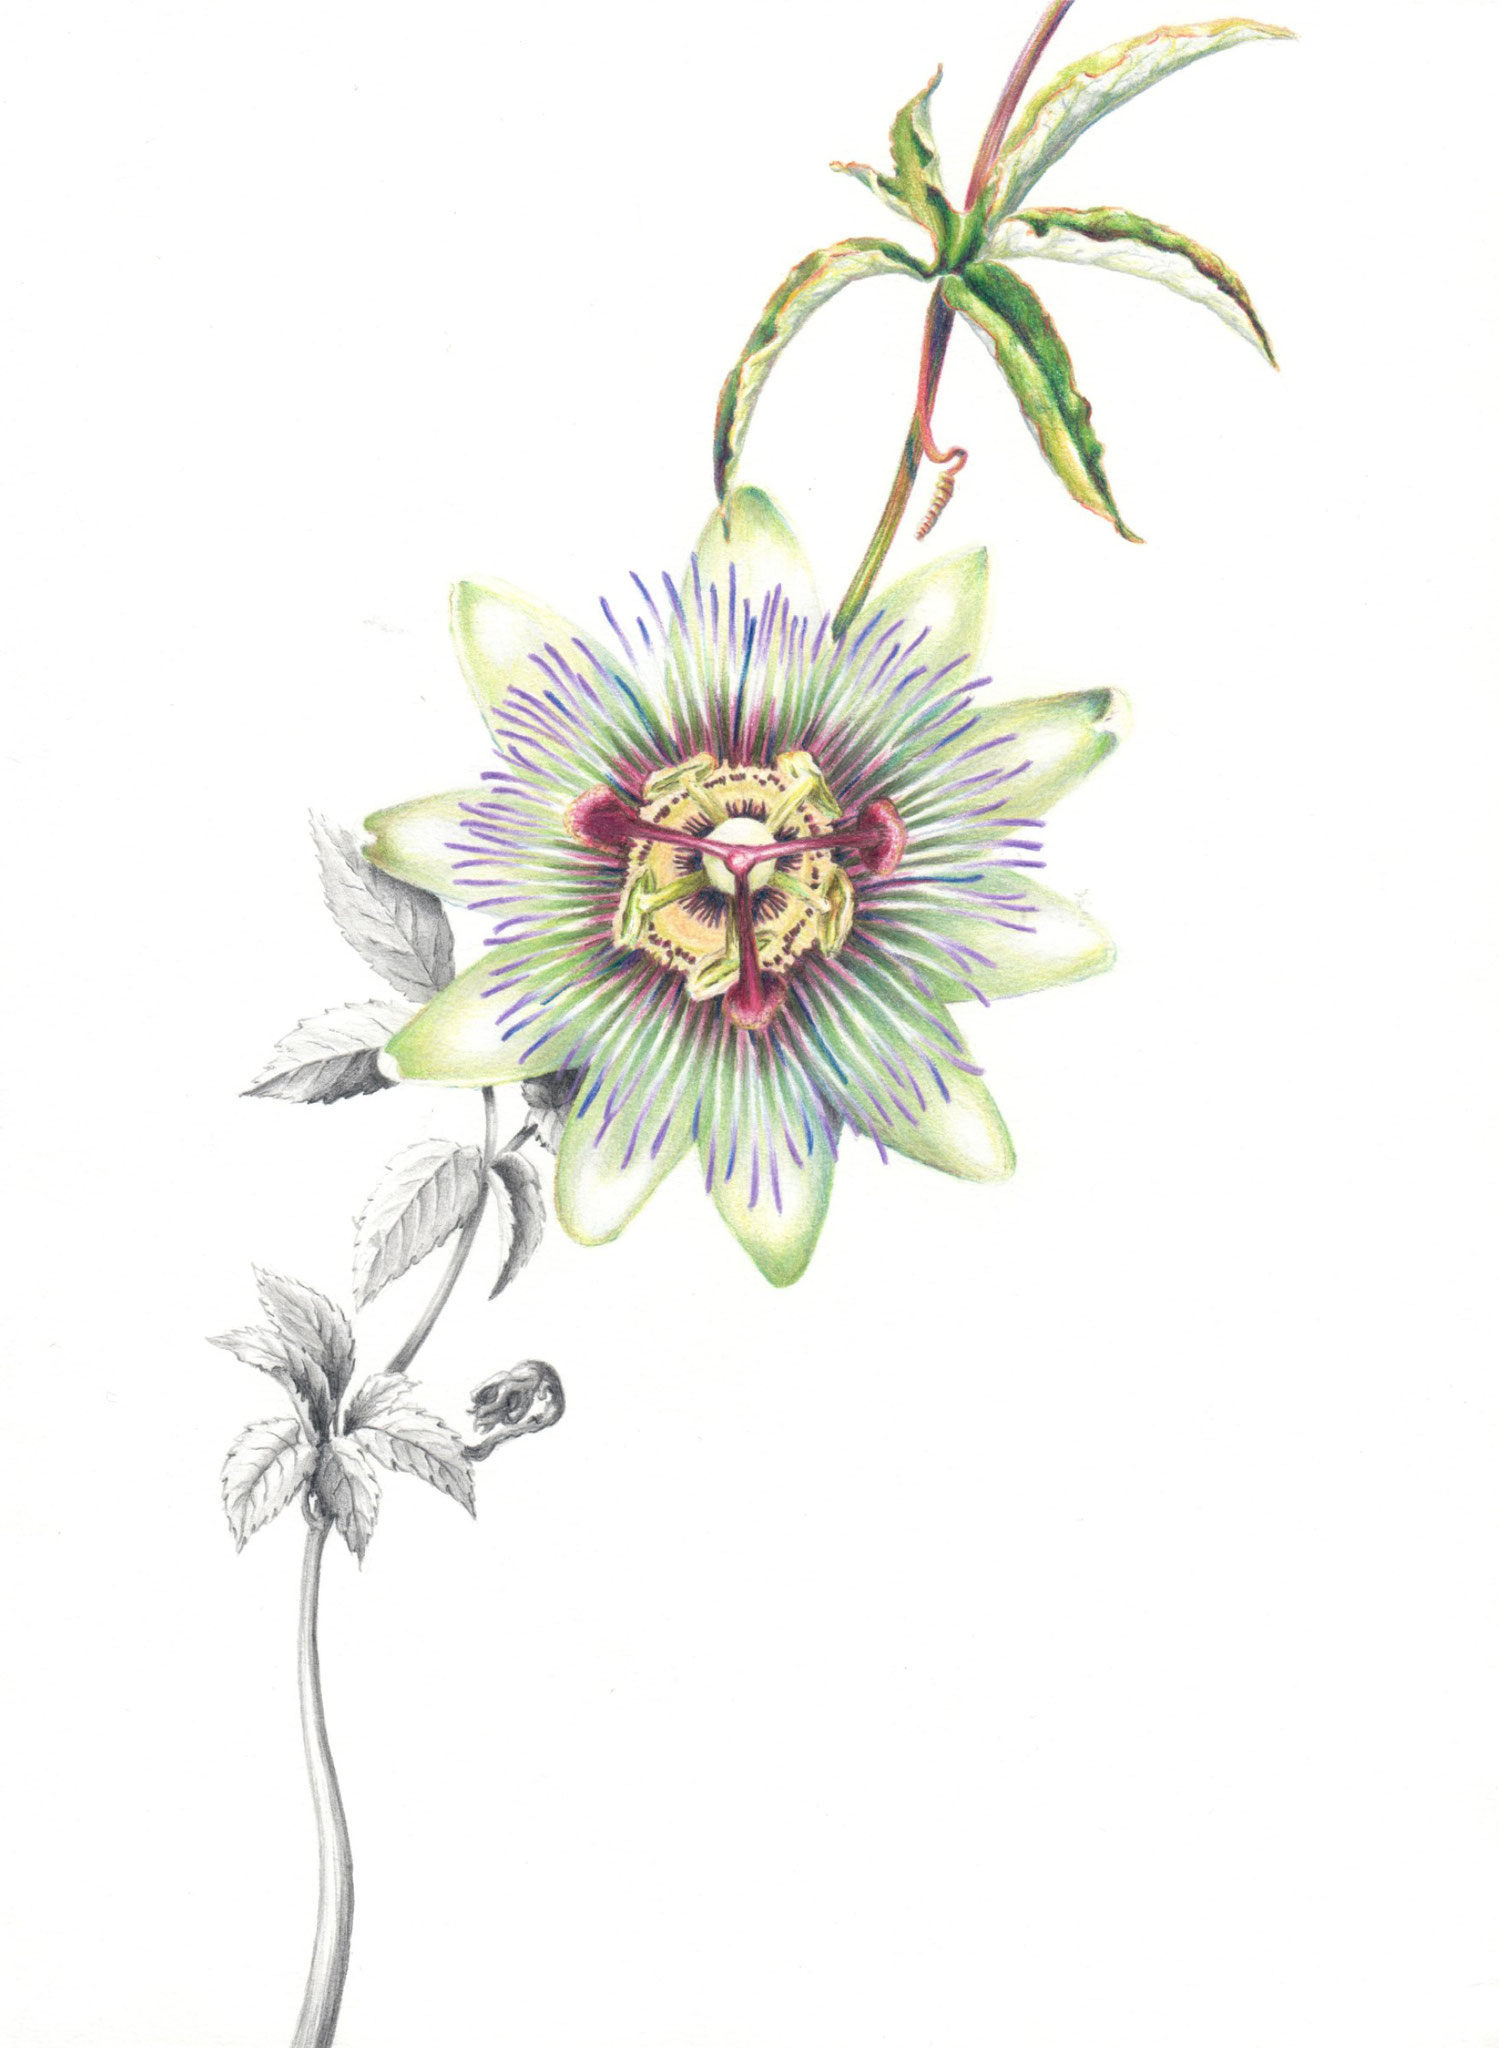 Passion Flower and Seven Leaves